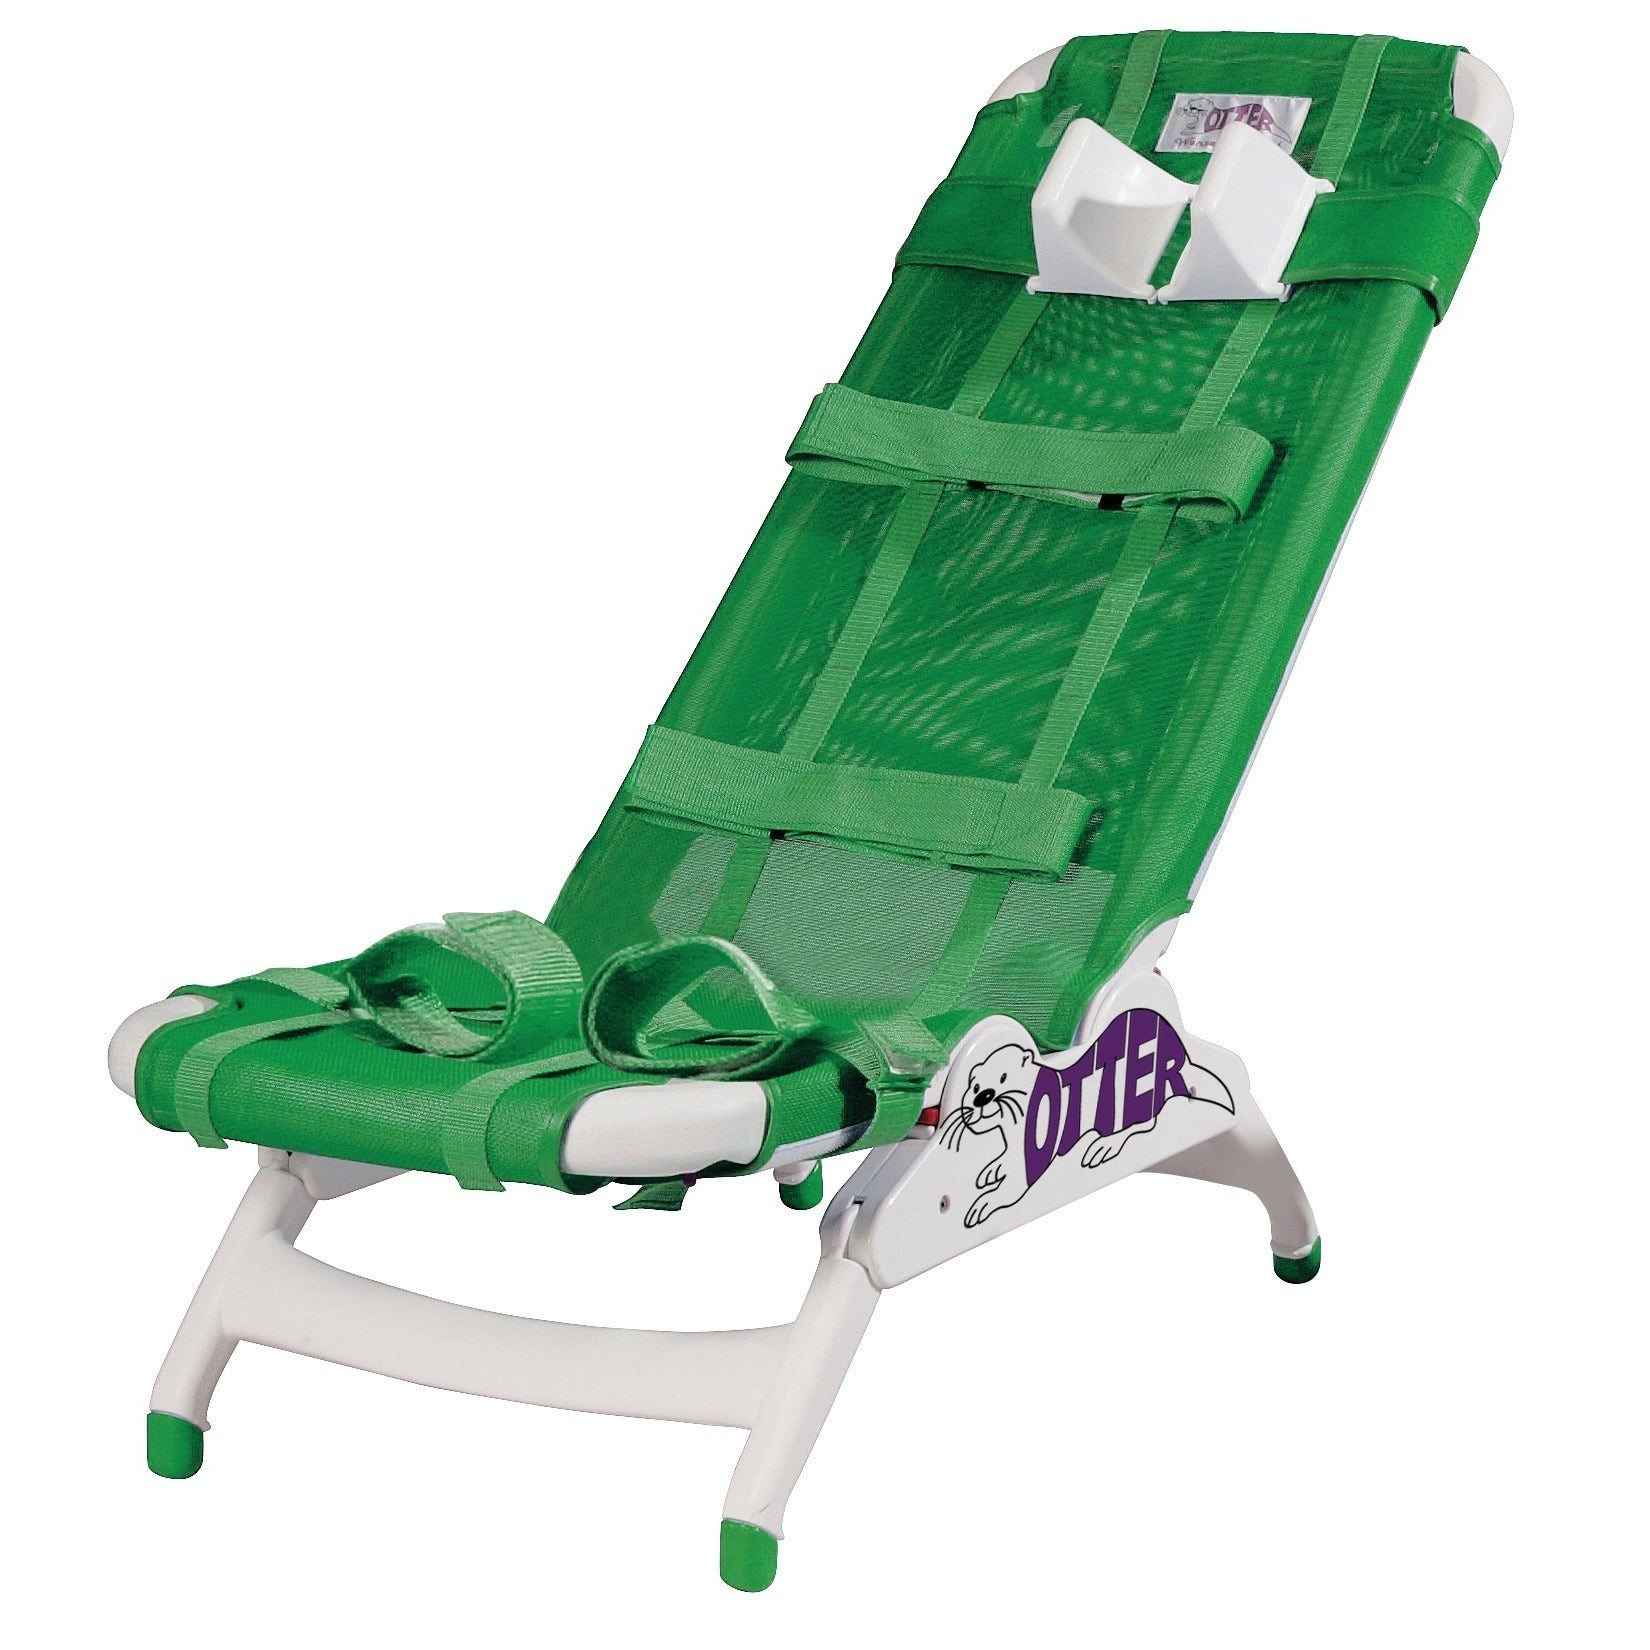 Otter Pediatric Bathing System - Free Shipping Today - Overstock ...